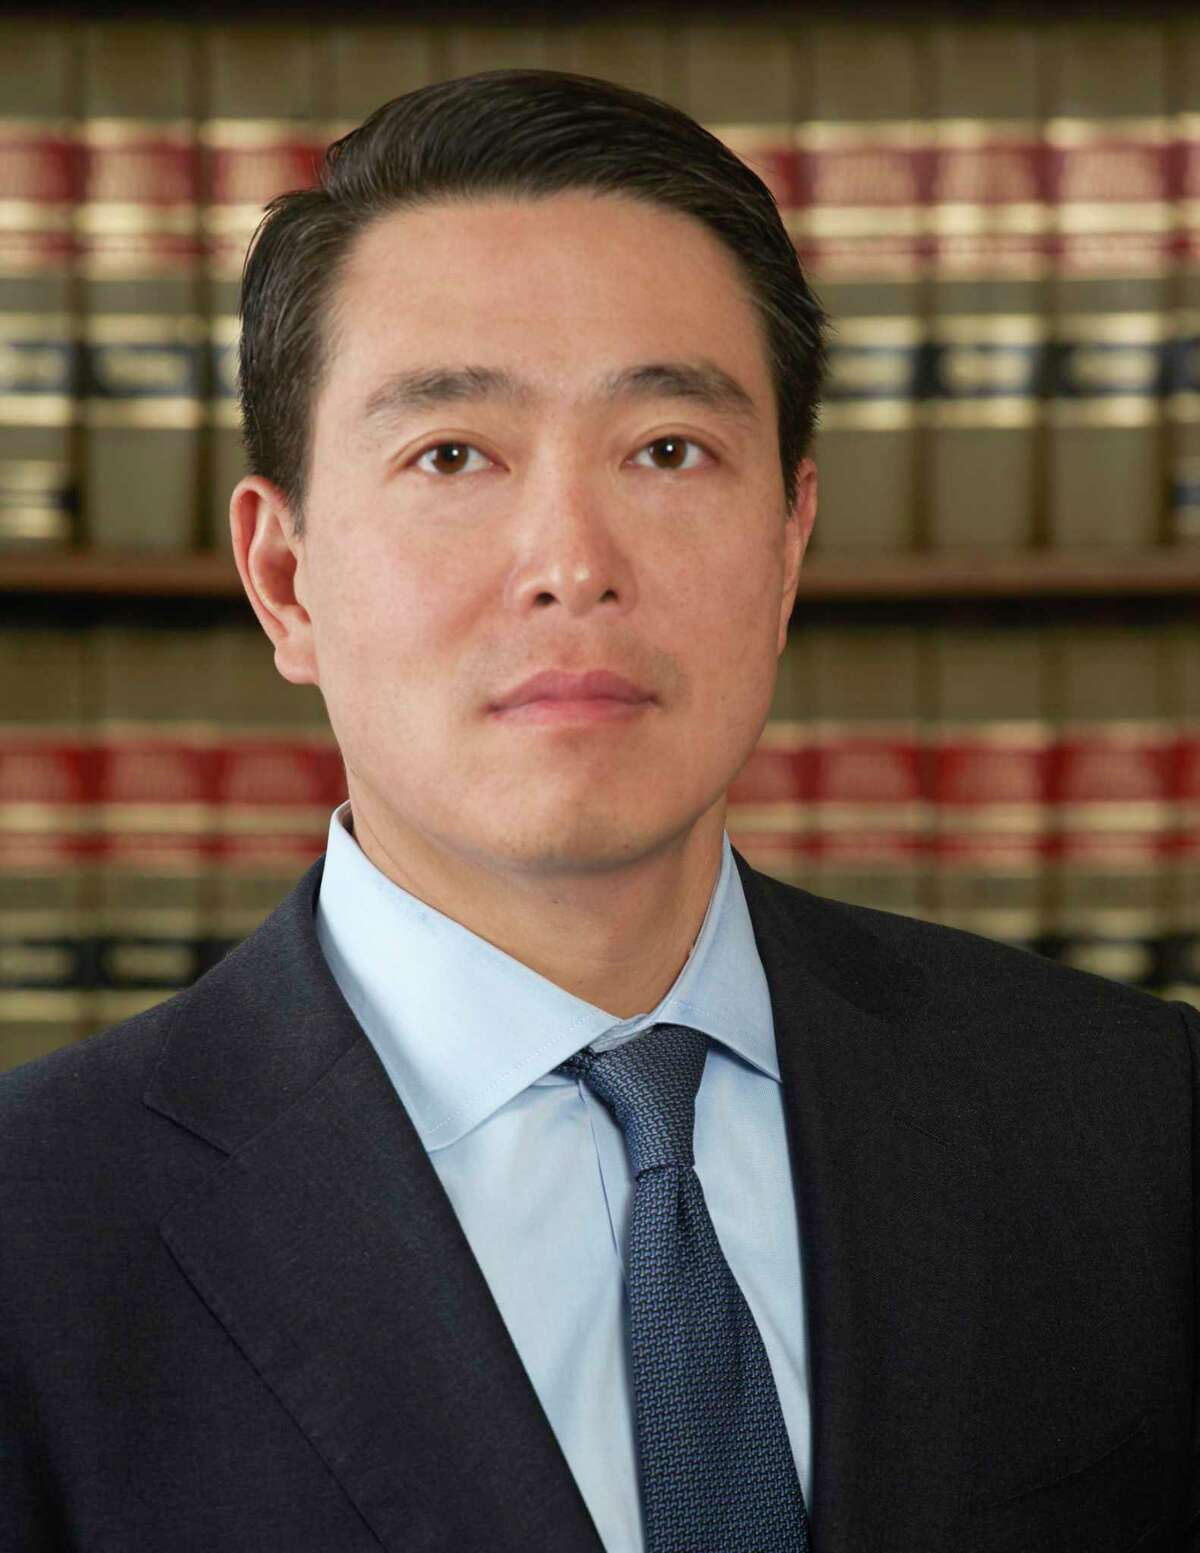 Former acting U.S. Attorney Joon Kim has been leading a state attorney general's investigation into allegations that Gov. Andrew M. Cuomo sexually harassed multiple women.(U.S. Attorney's Office via AP)